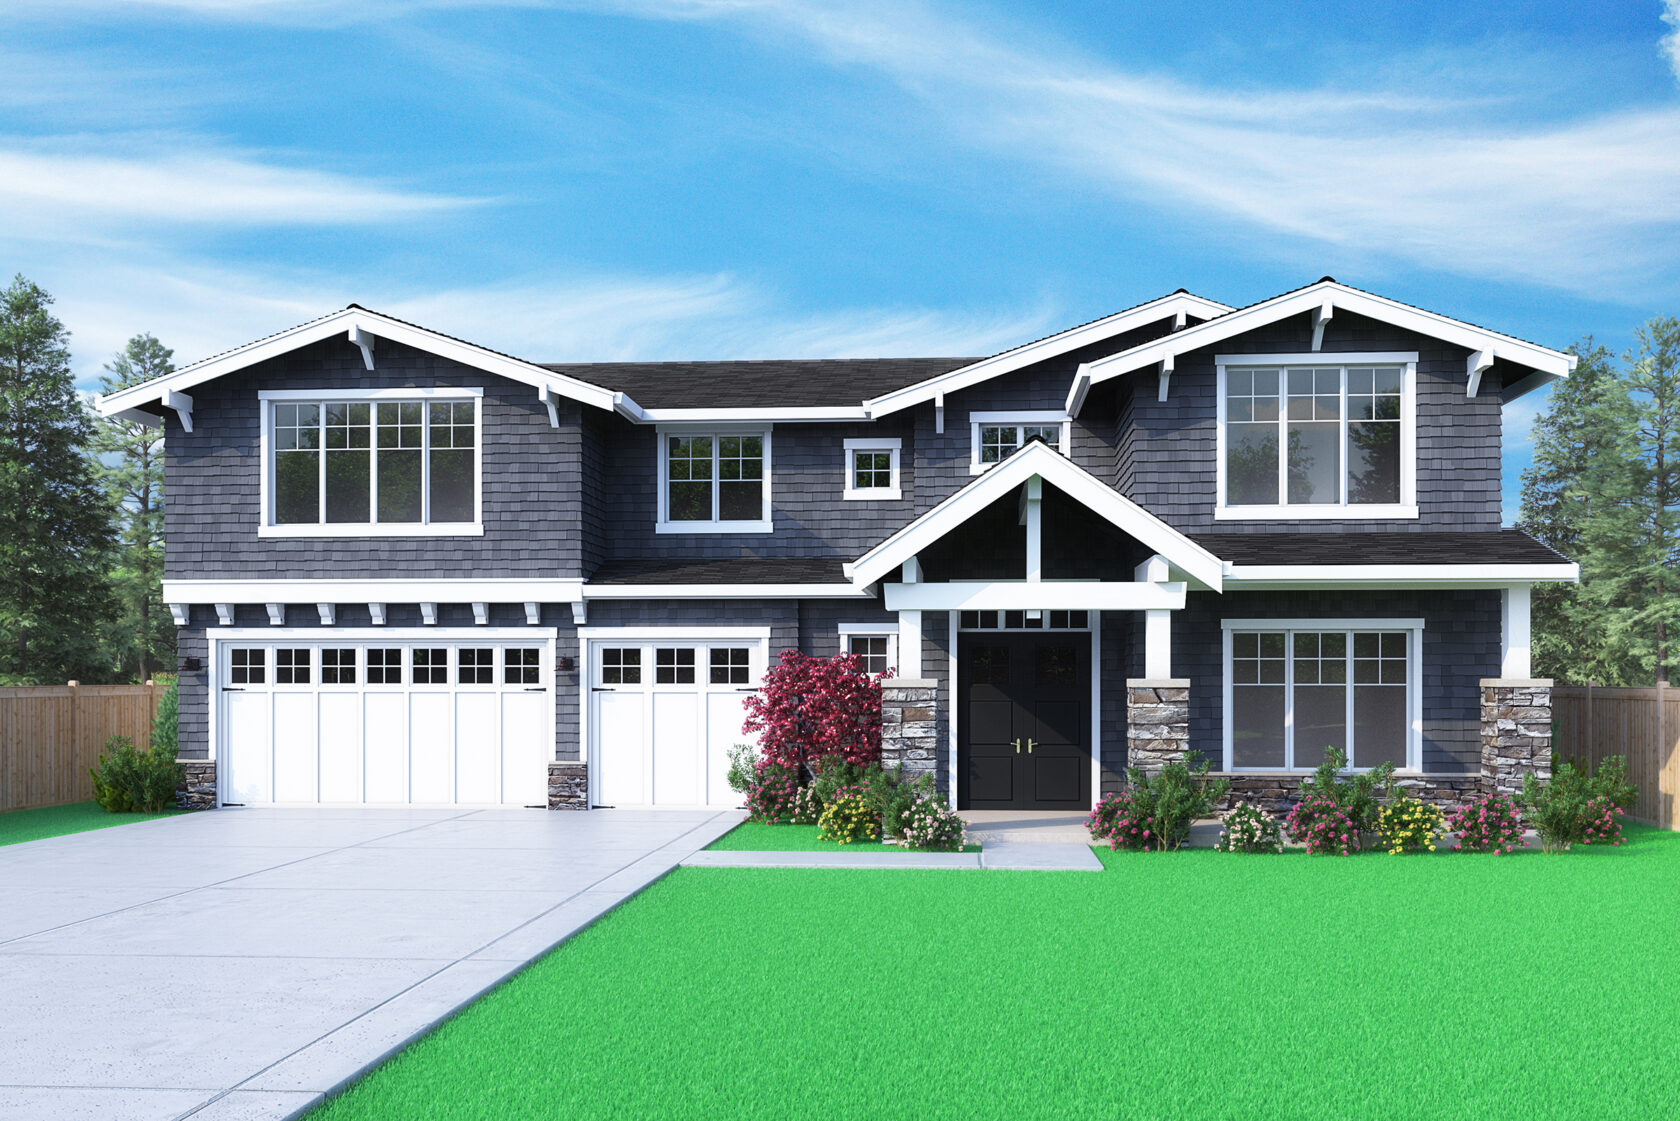 View our new luxury home construction on 12601 SE 4th Pl, in Kirkland, WA from MN Custom Homes